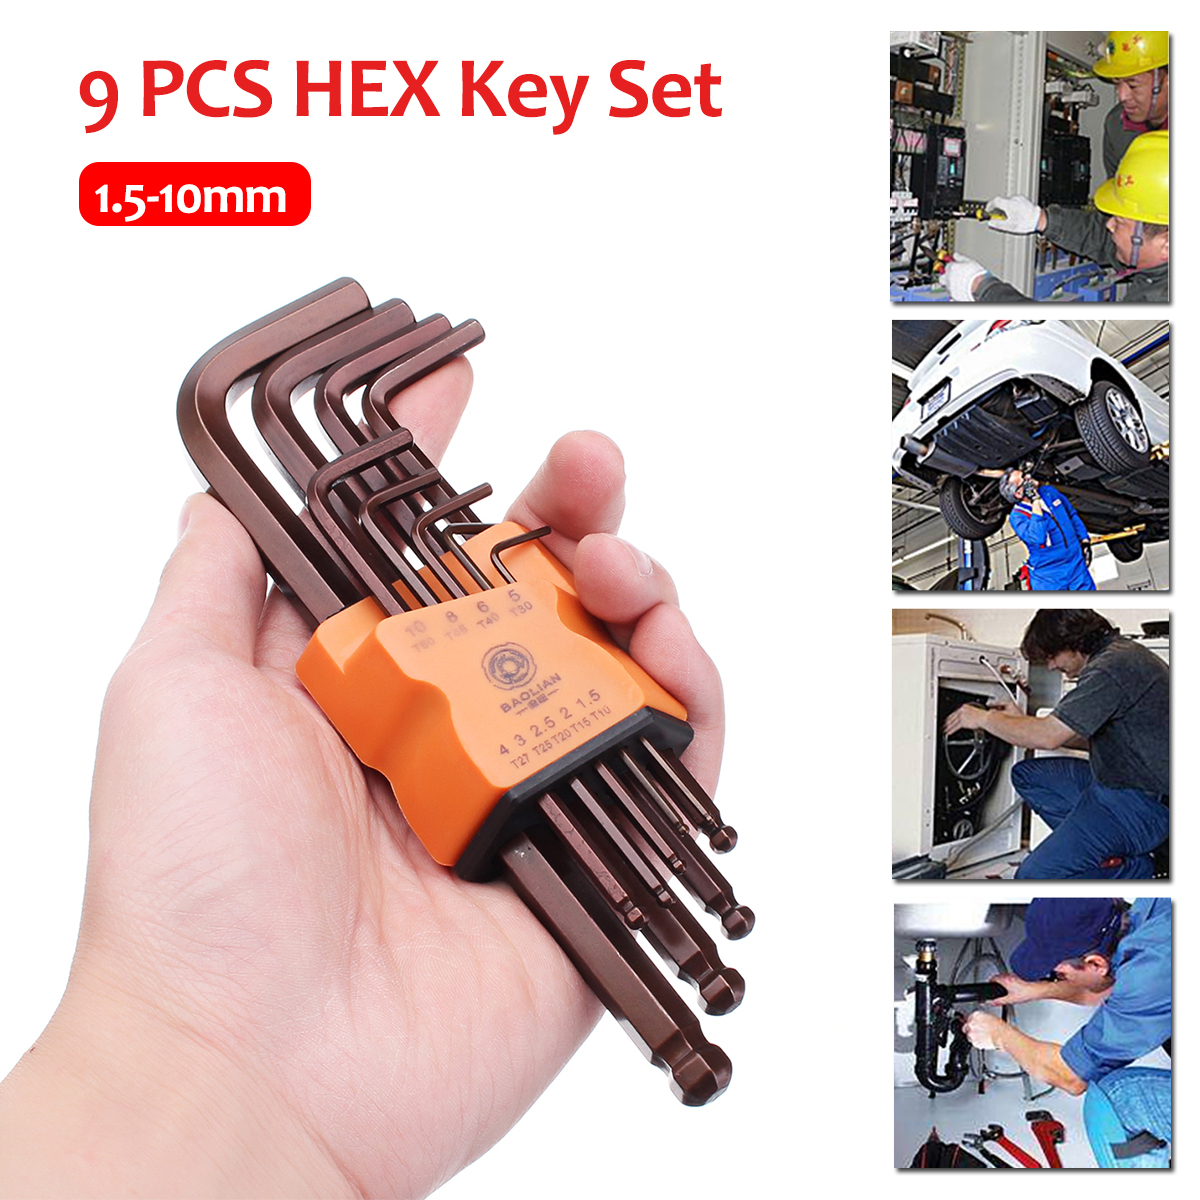 9pcs 1.5/2/2.5/3/4/5/6/8/10mm Hex Key Set Wrench Ball Point Hexagon Wrench Screwdriver Repair Tools Kit